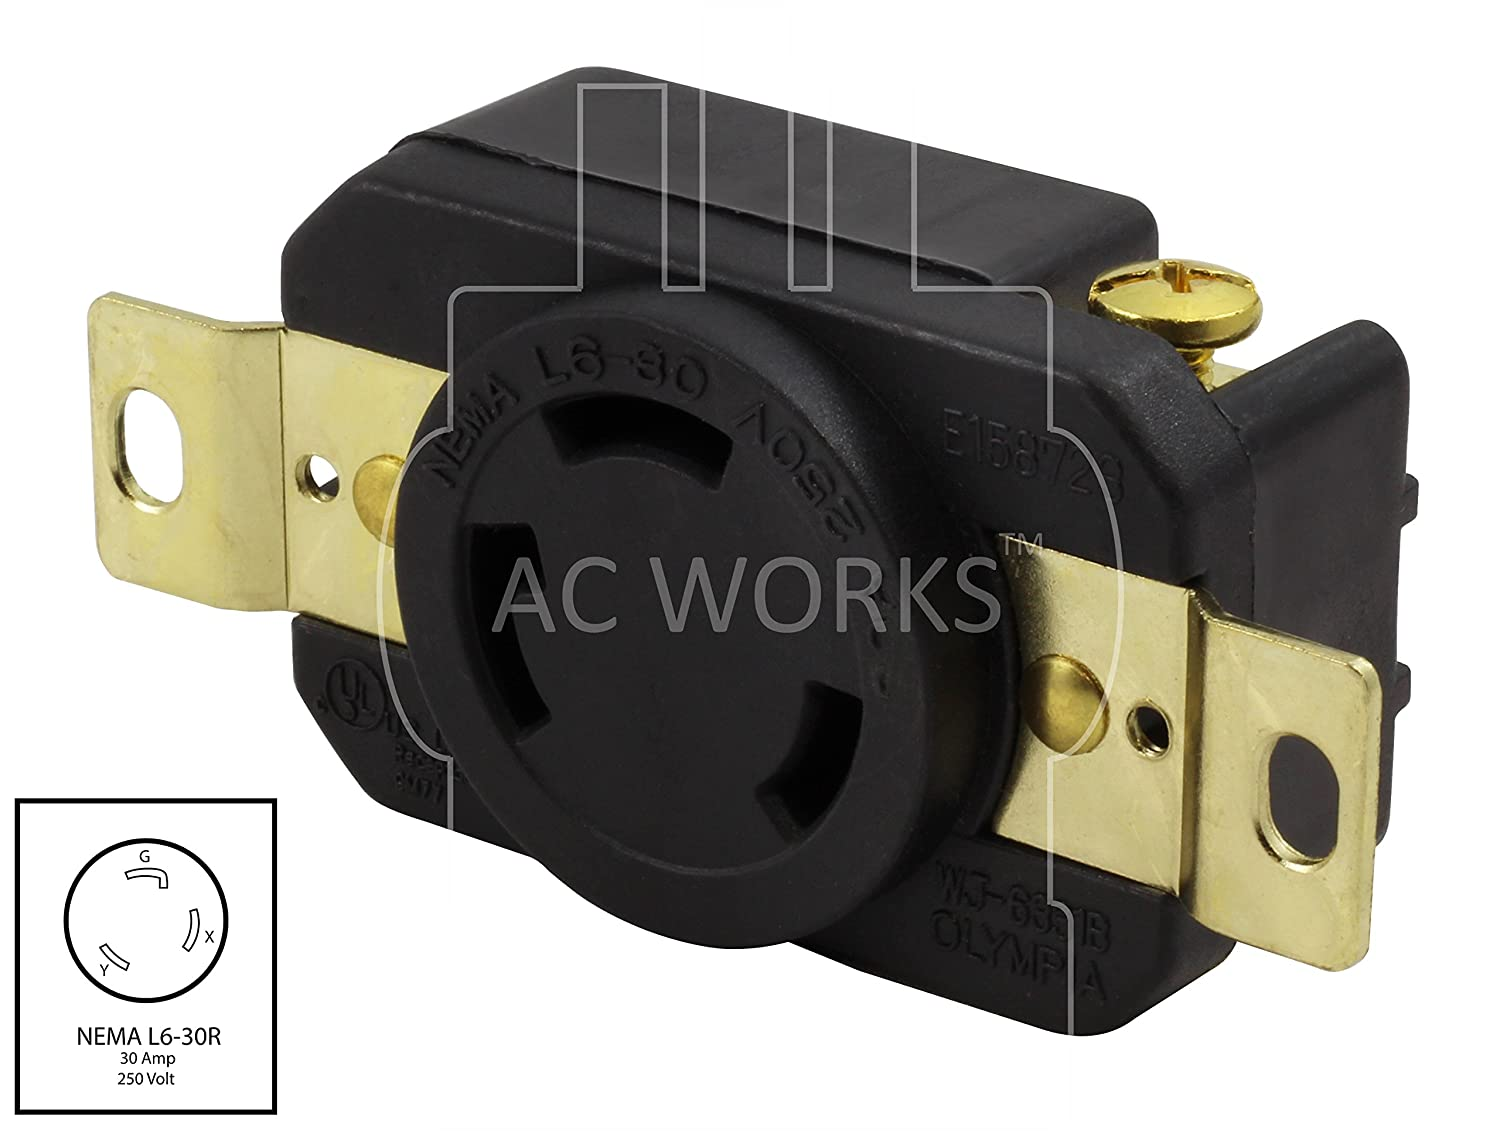 NEMA L6-30R Flush Mounting Locking Industrial Grade Receptacle 250-Volt AC WORKS 30-Amp FML630R